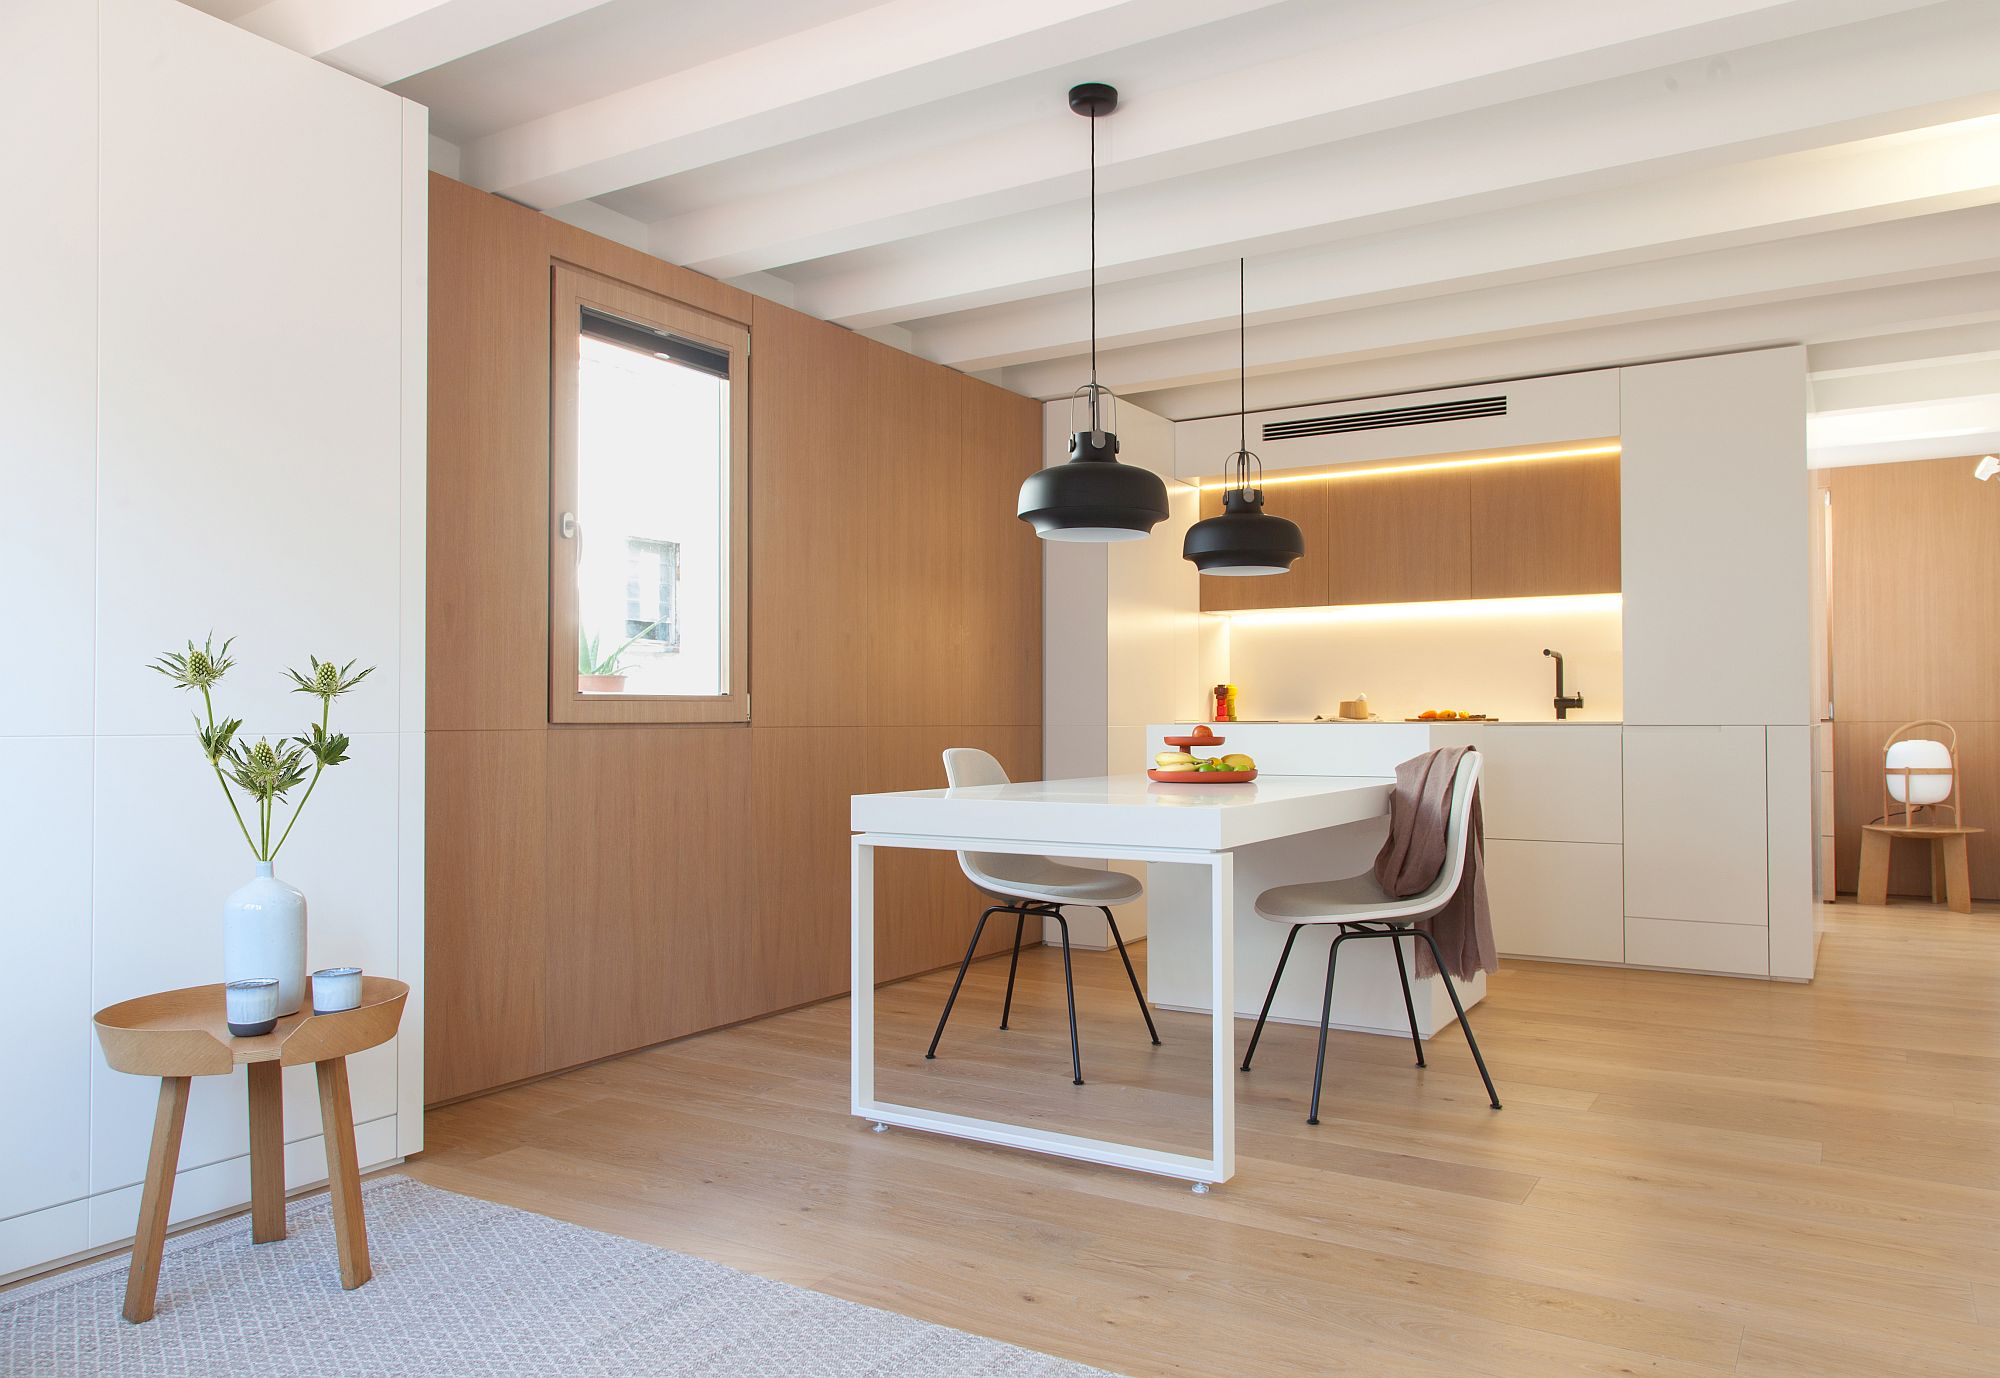 White and wood create a beautiful and space-savvy interior for the tiny Barcelona apartment